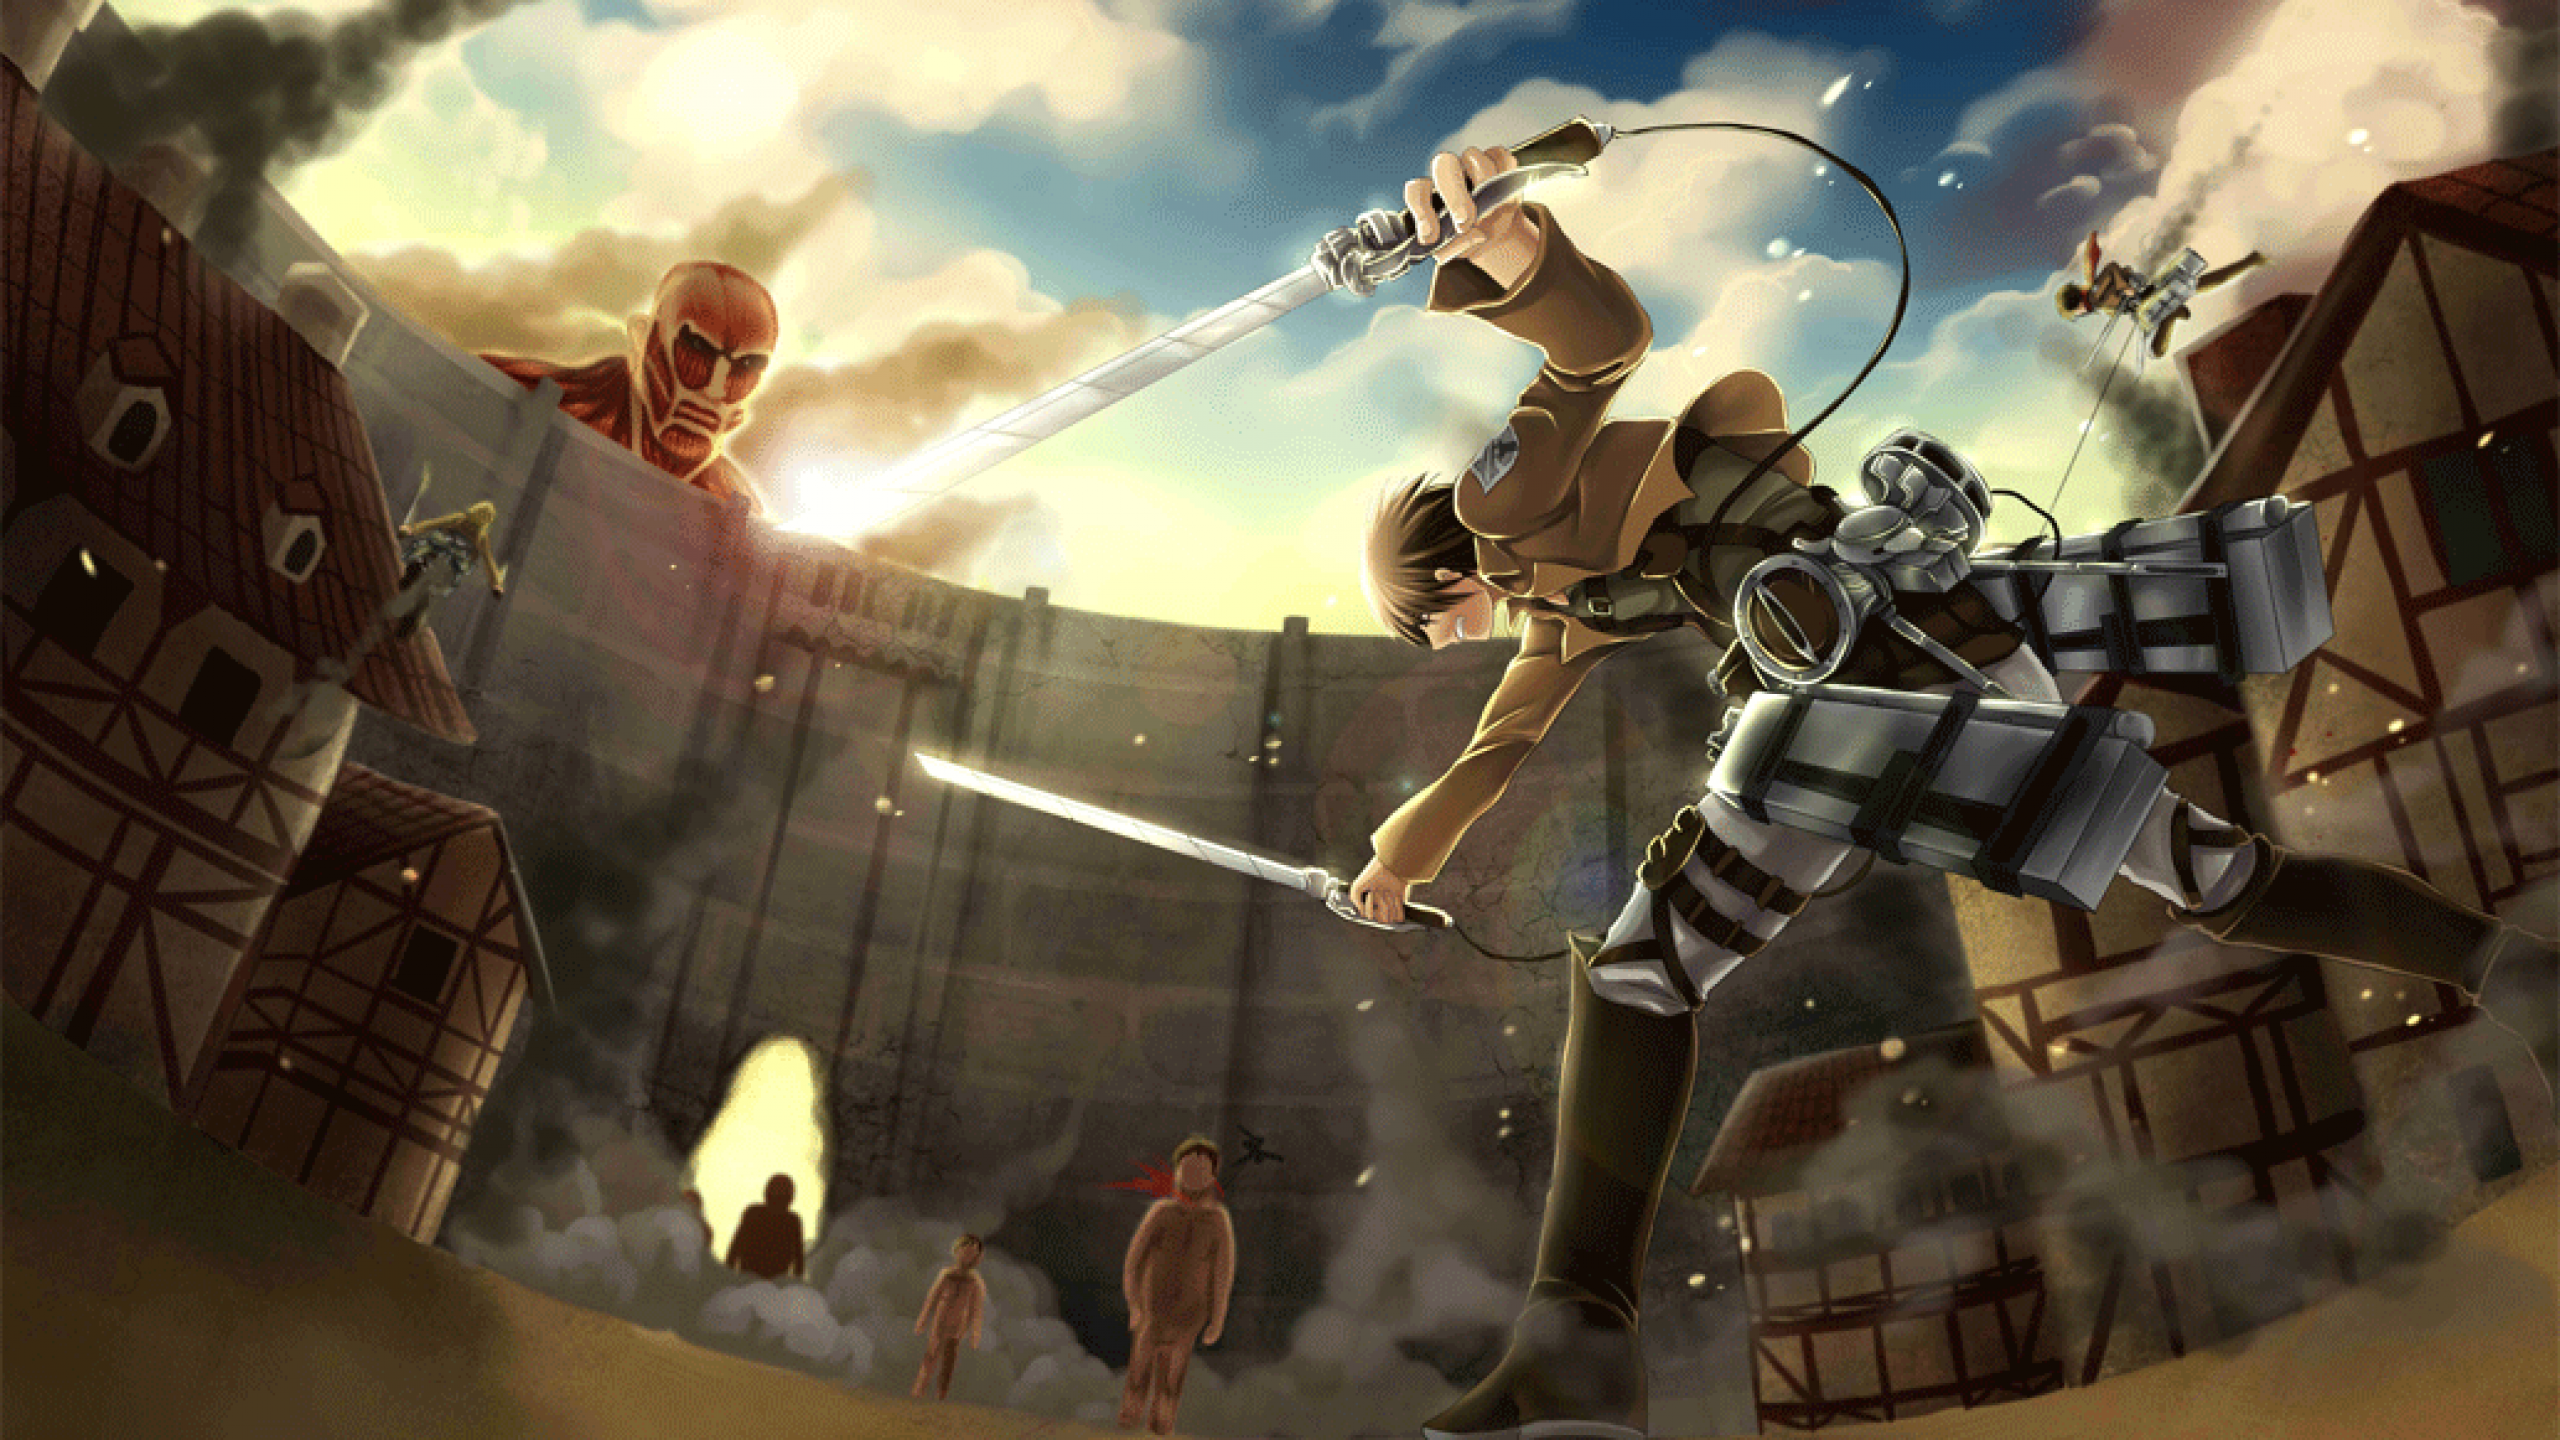 Attack On Titan Wallpapers High Quality Download Free